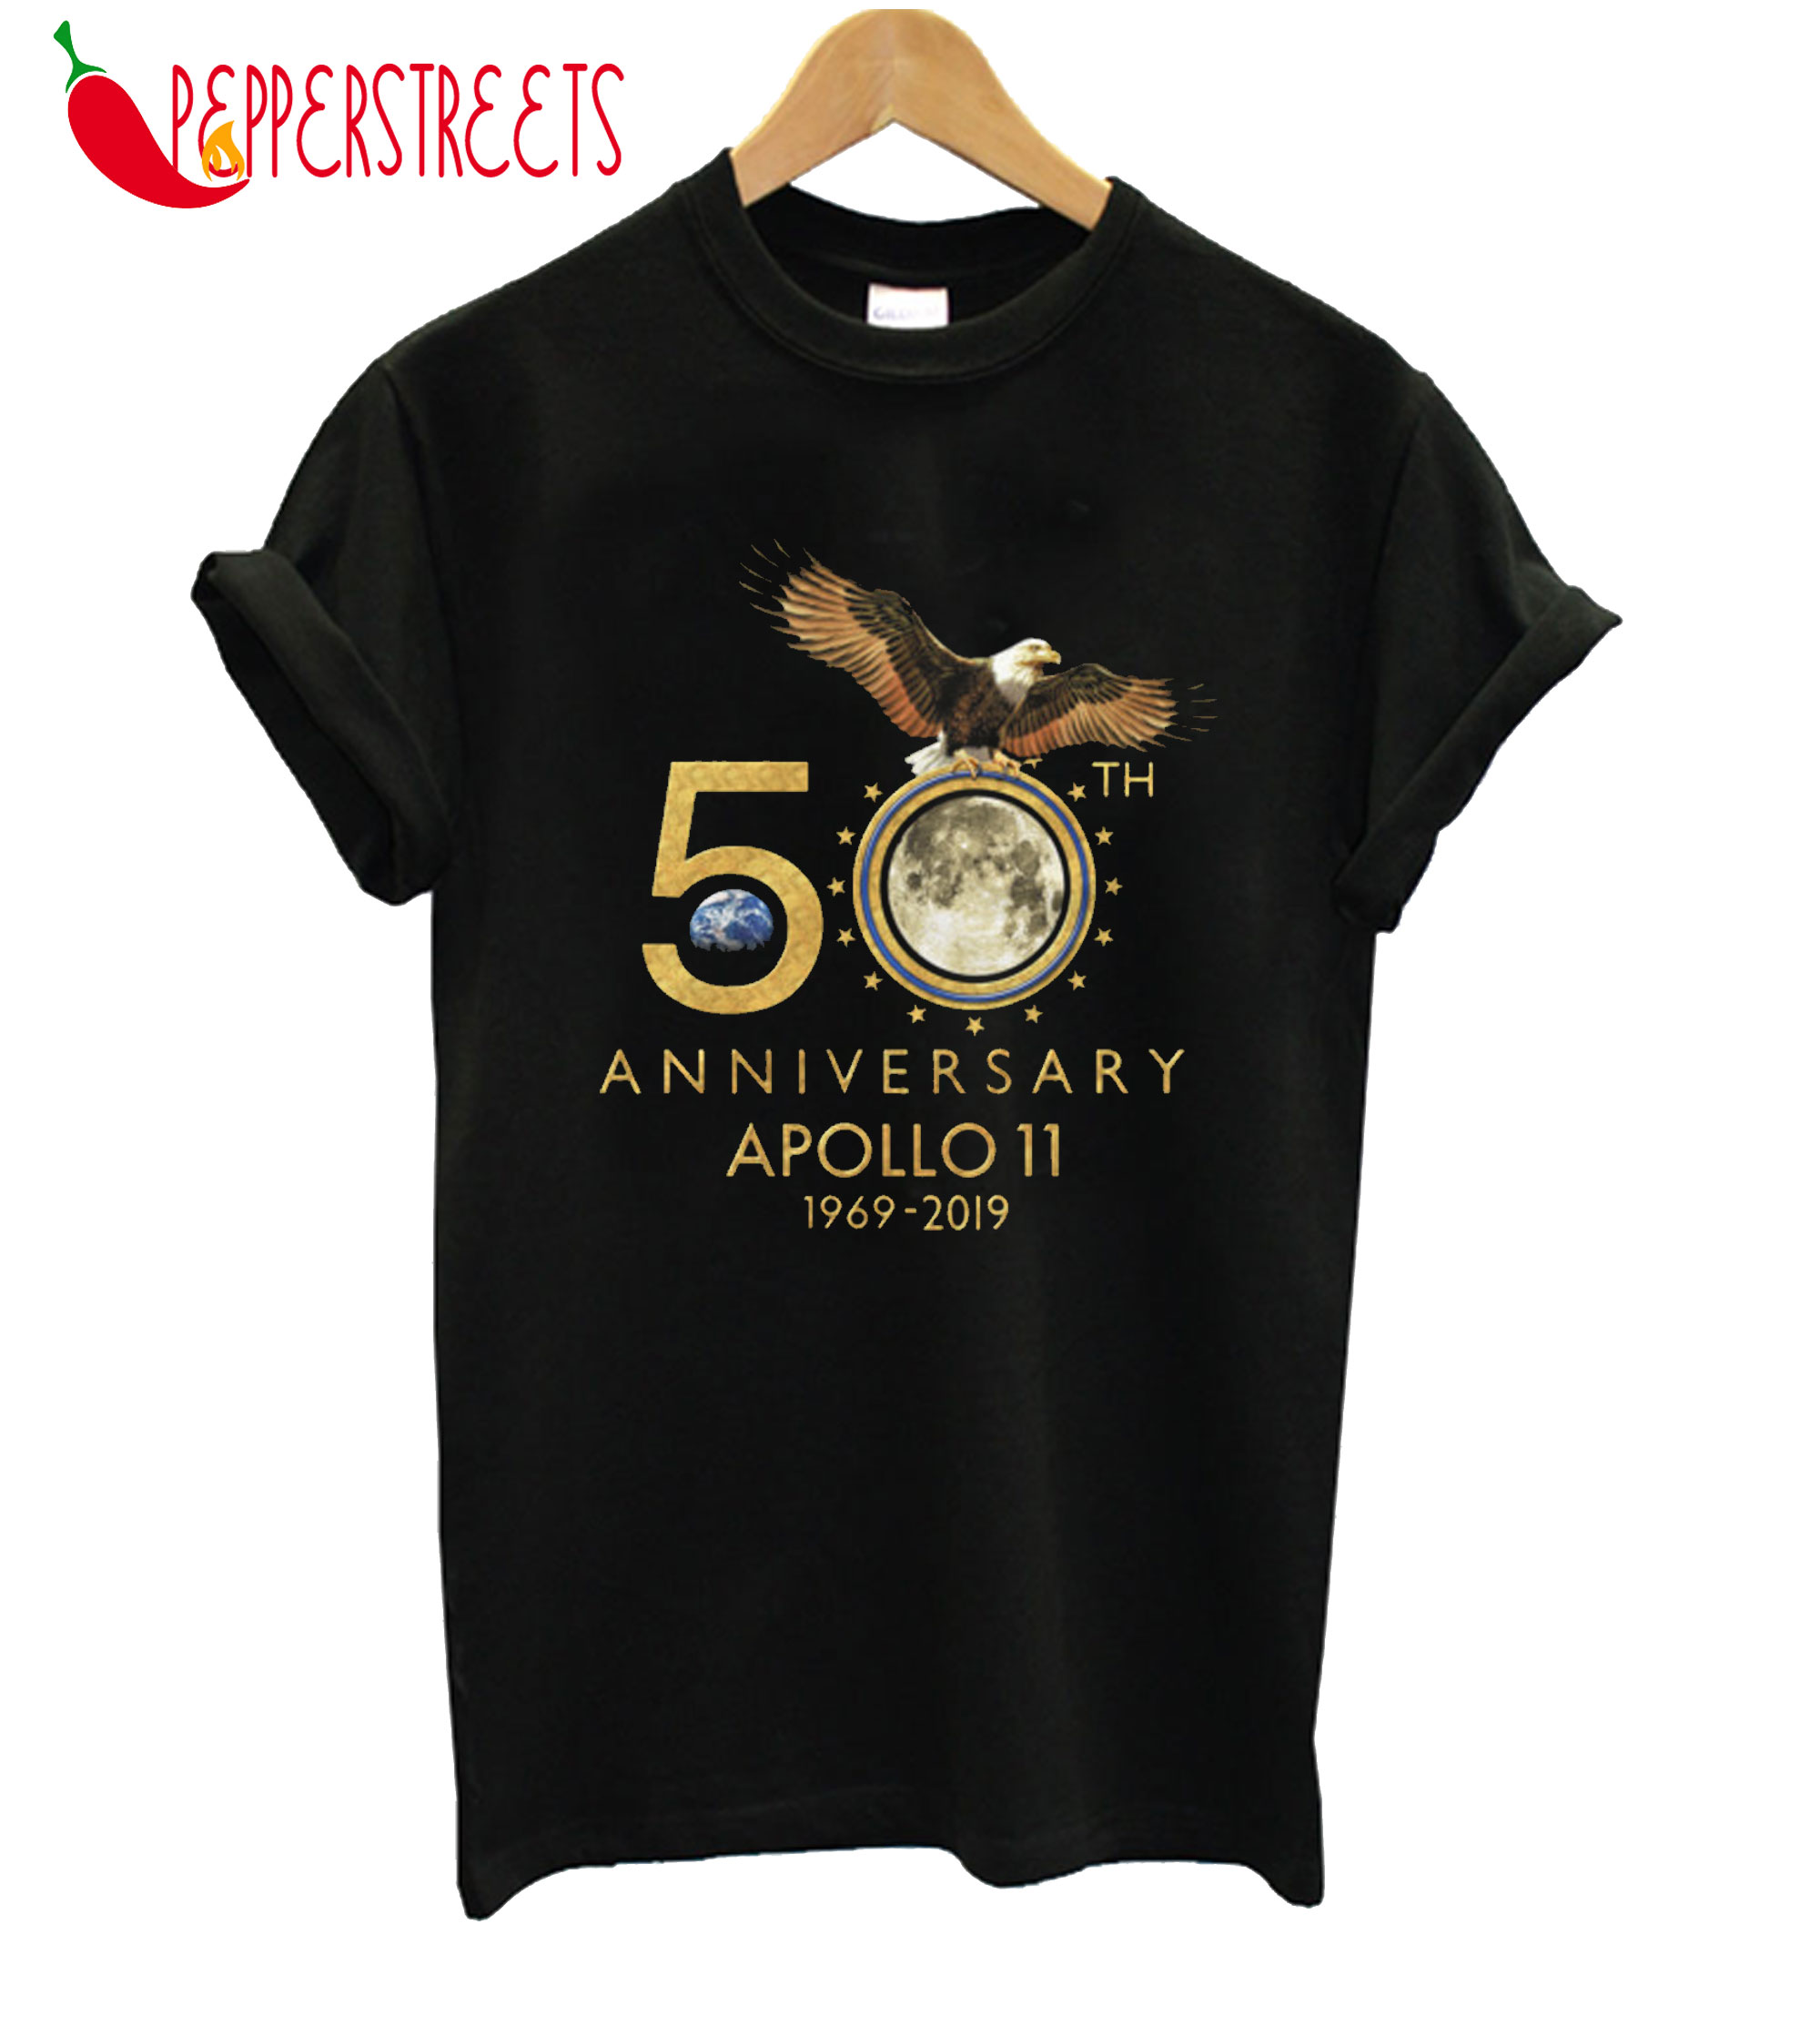 50 Th Anniversary Apollo 11 1969-2019 T-Shirt